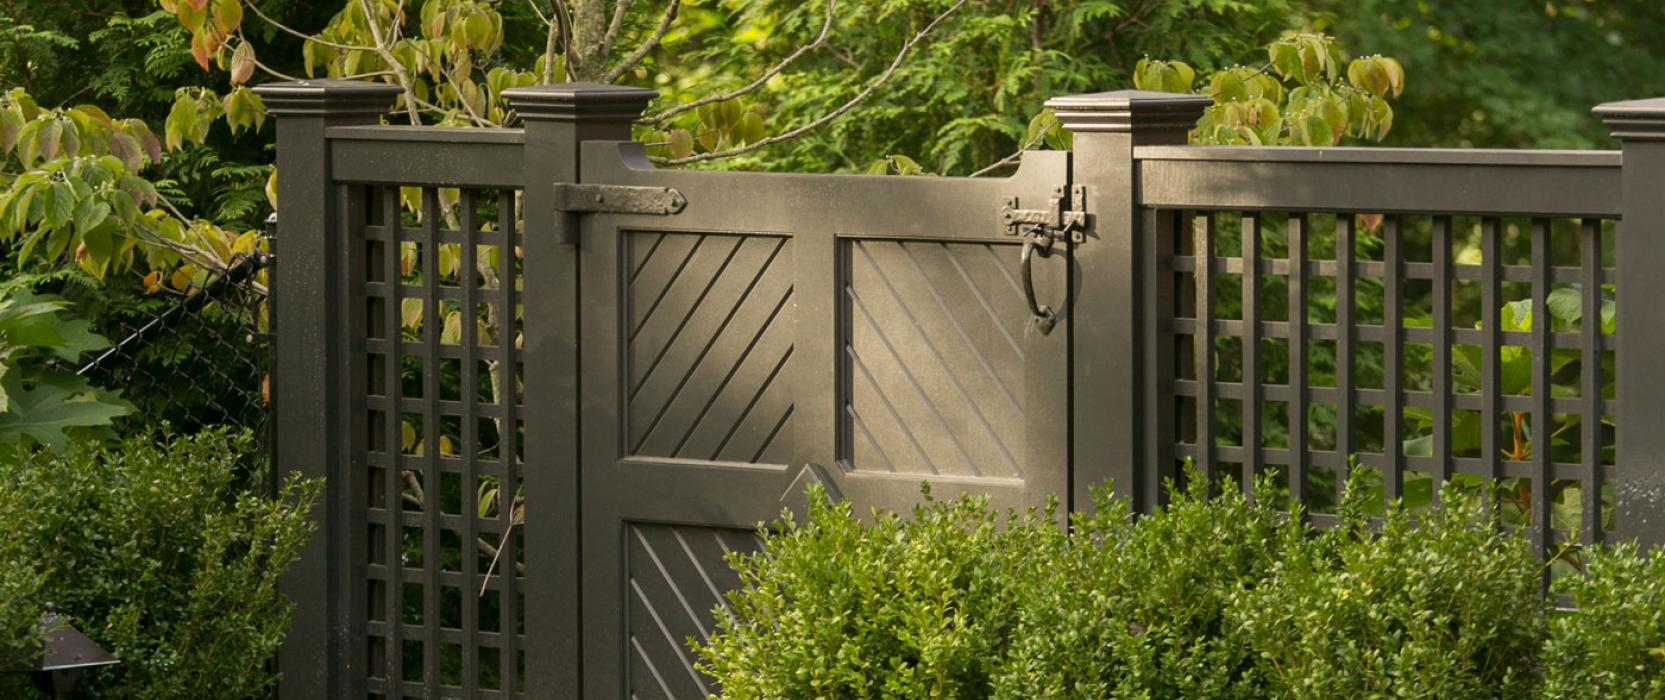 Gated landscape design by Dan Gordon Landscape Architects